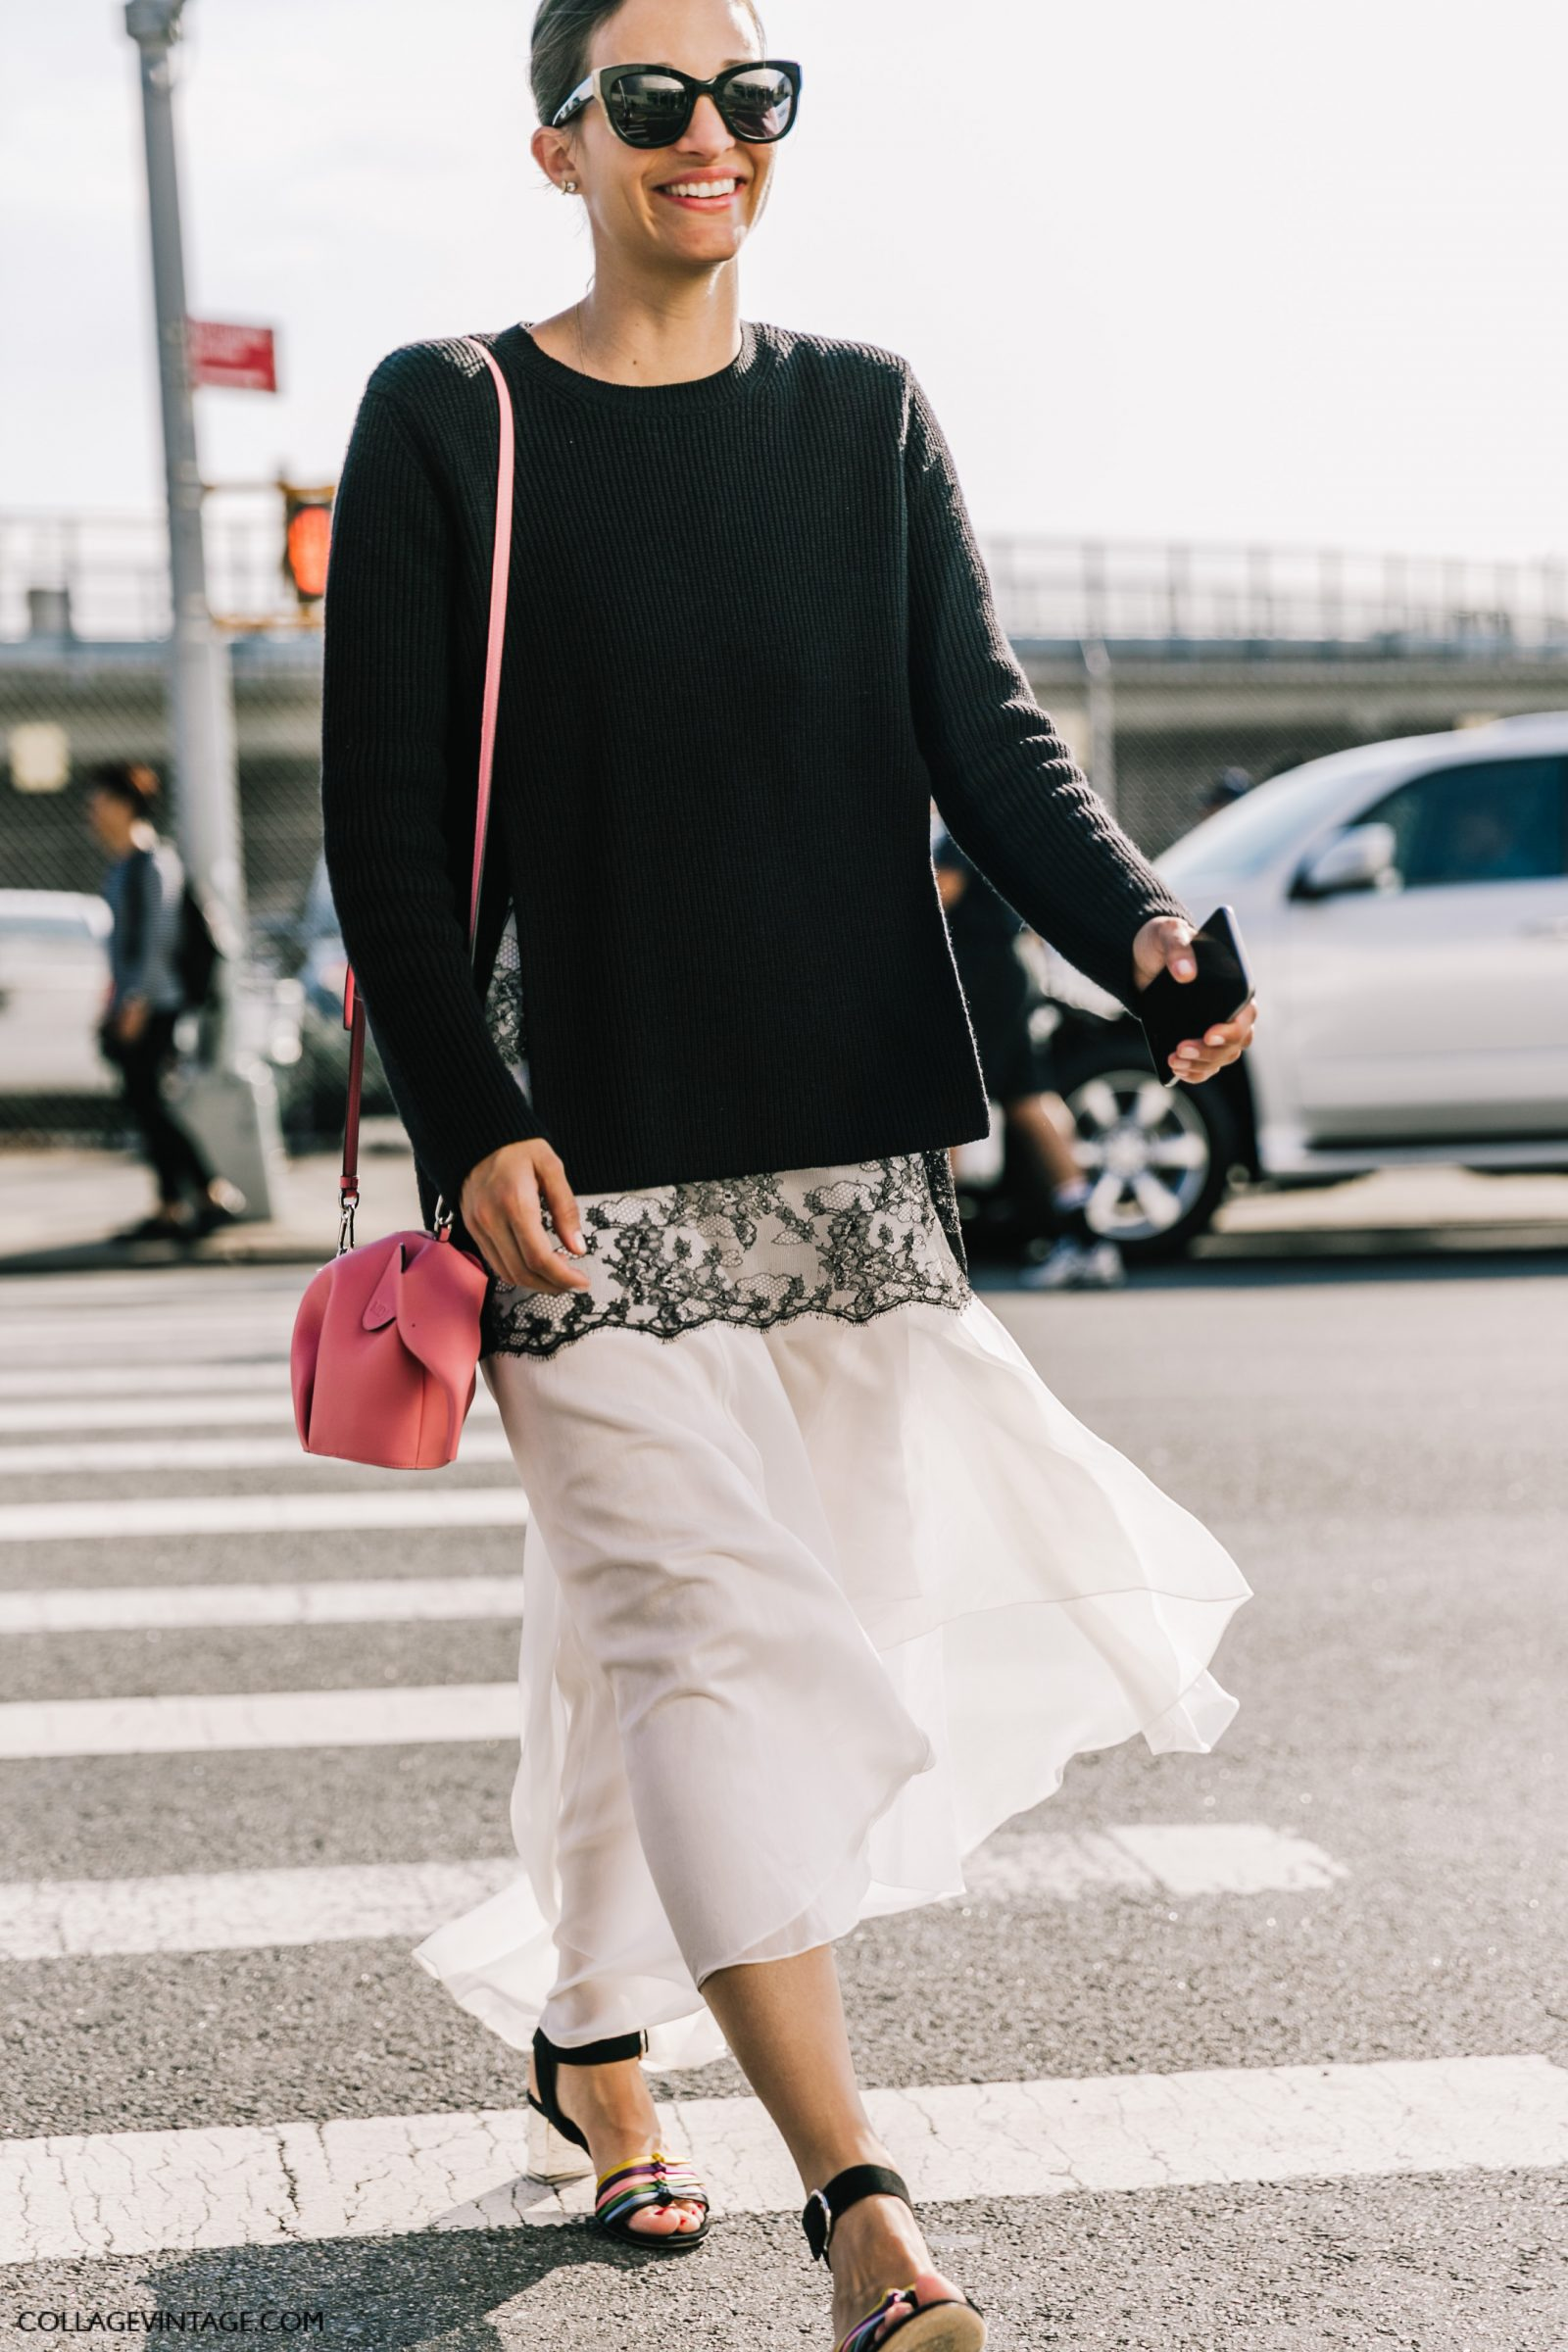 nyfw-new_york_fashion_week_ss17-street_style-outfits-collage_vintage-vintage-mansur_gavriel-rodarte-coach-205